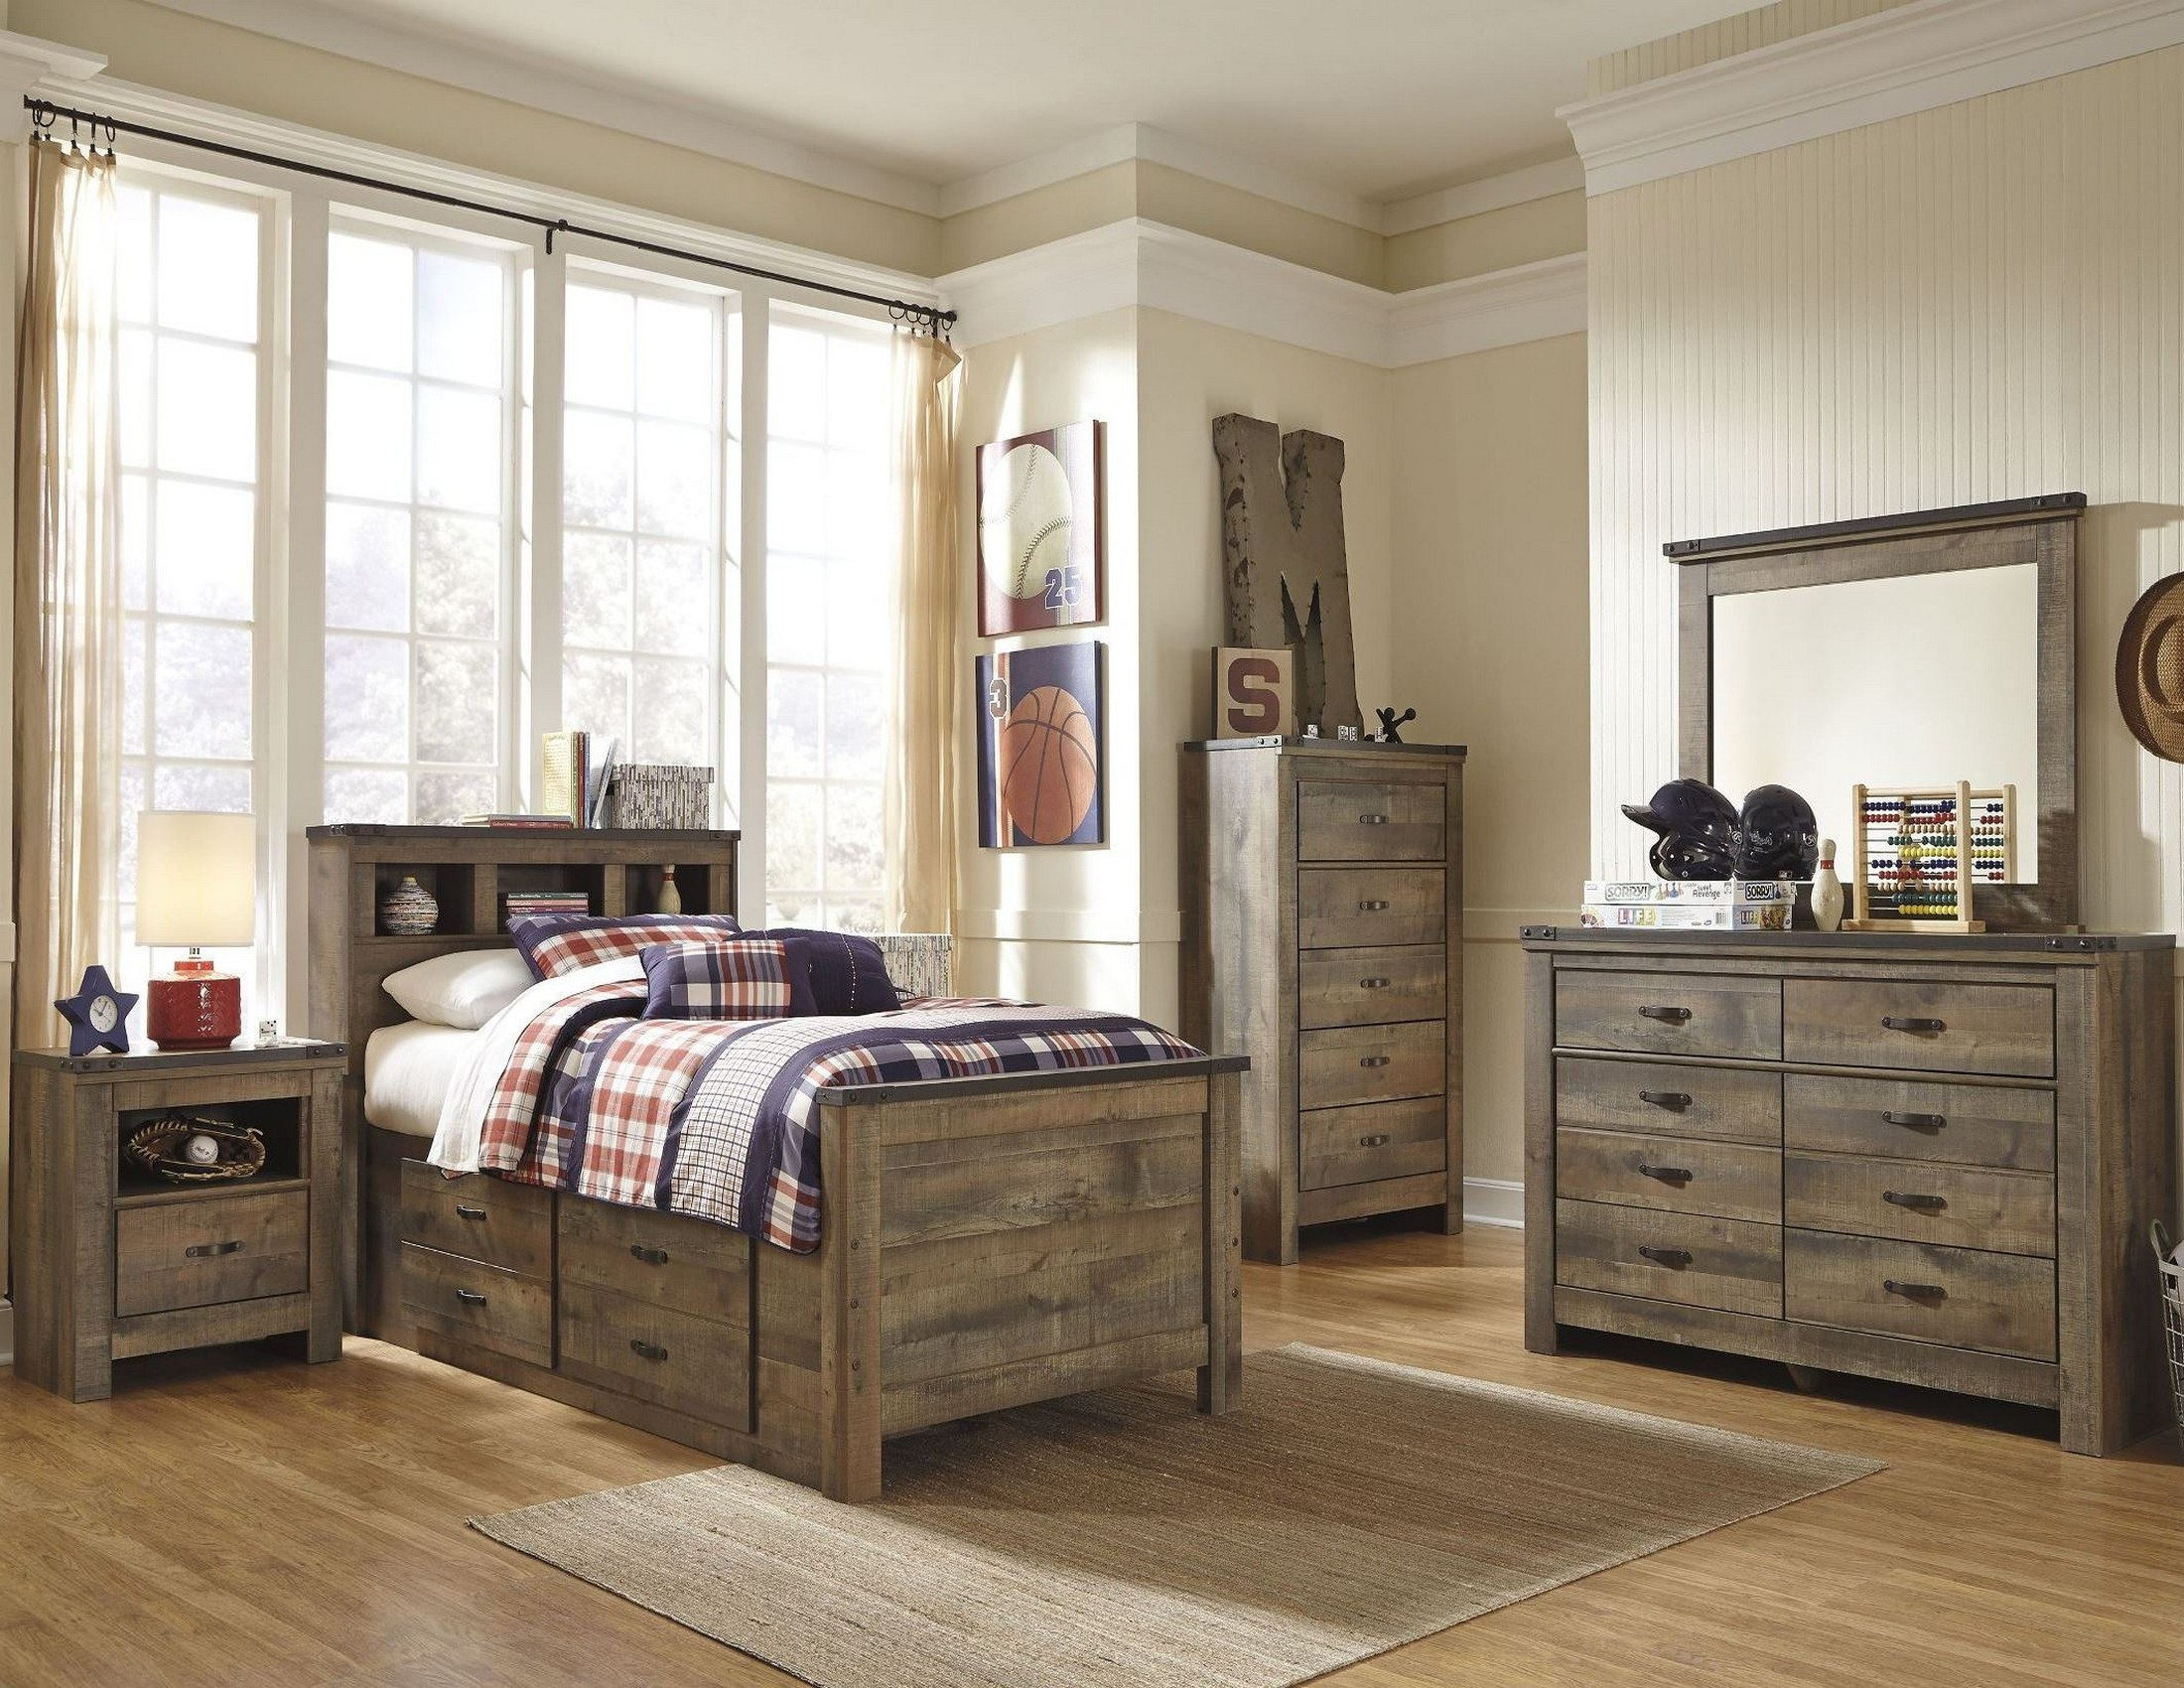 Trinell brown youth bookcase storage bedroom set from ashley coleman furniture for Youth storage bedroom furniture